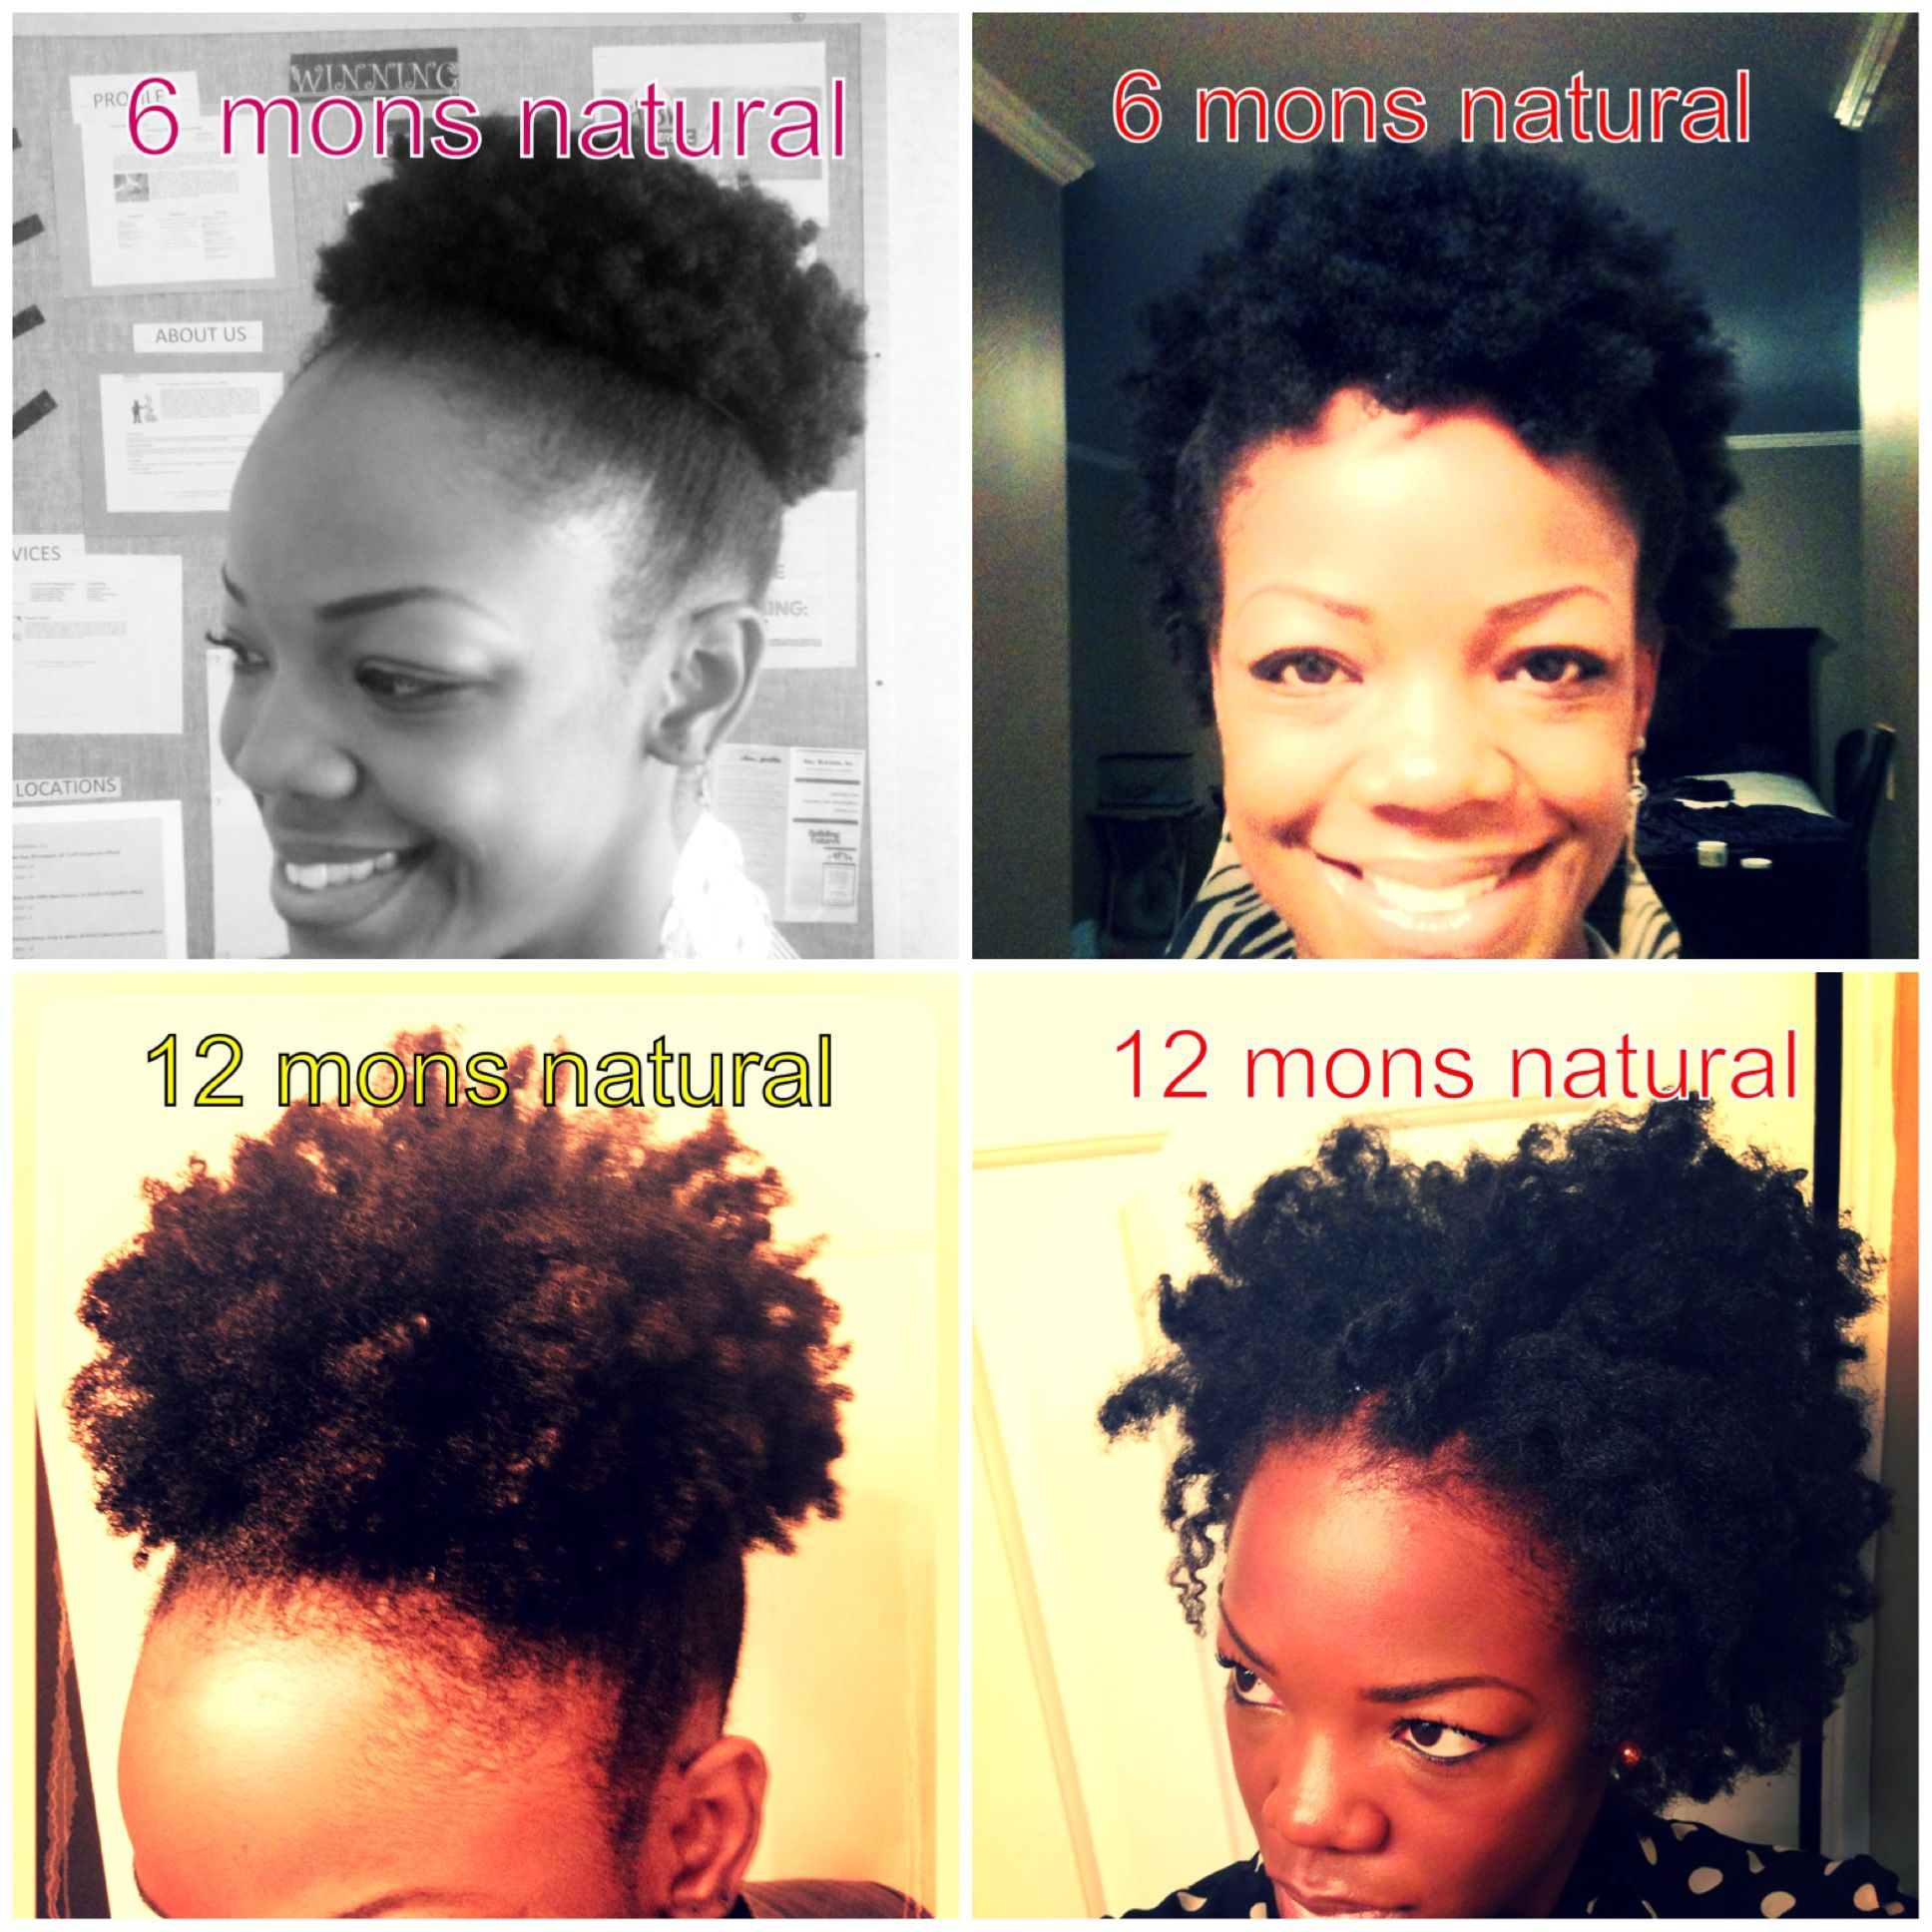 6 Months Of Hair Growth Naturalhair Teamnatural Kinksconfessions Kinks Hairgrowth Hair Journey Natural Hair Styles Beautiful Natural Hair